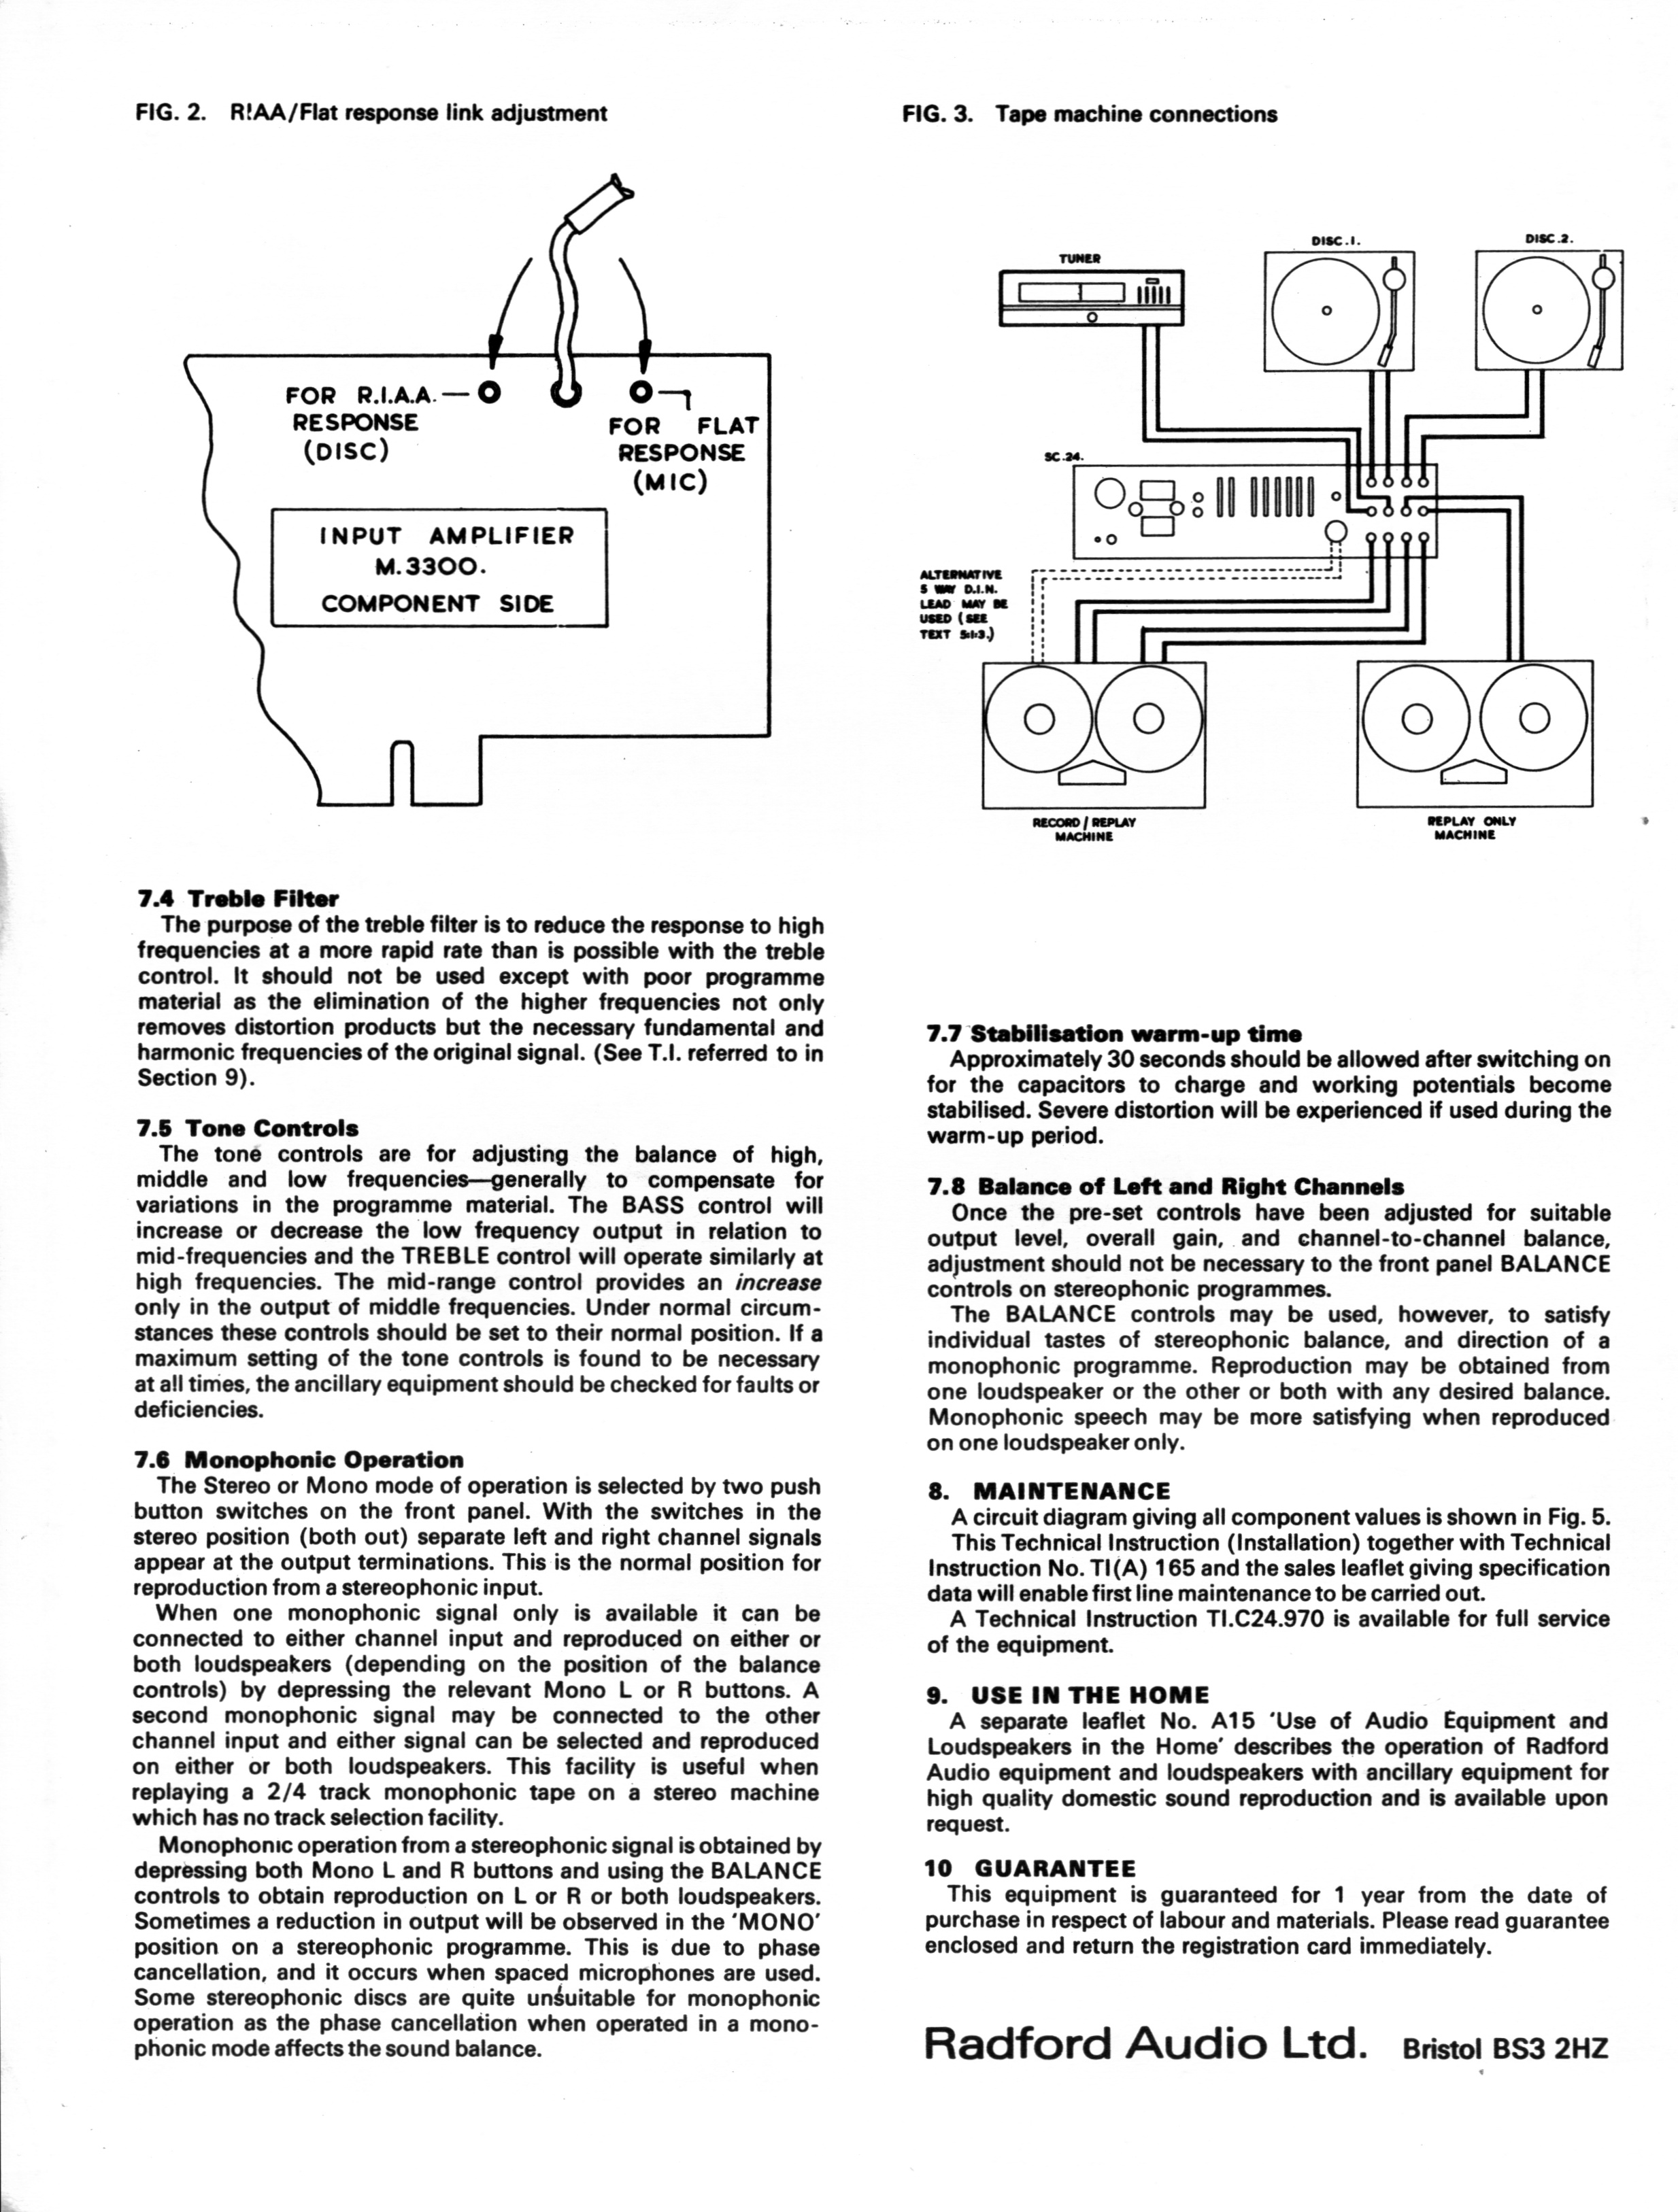 Uk Hi Fi History Society Radford Sc24 Pa50 Spa50 The Modified Treble Booster Circuit Diagram Is Purposed To Be Used As Page4 Jpeg 1m